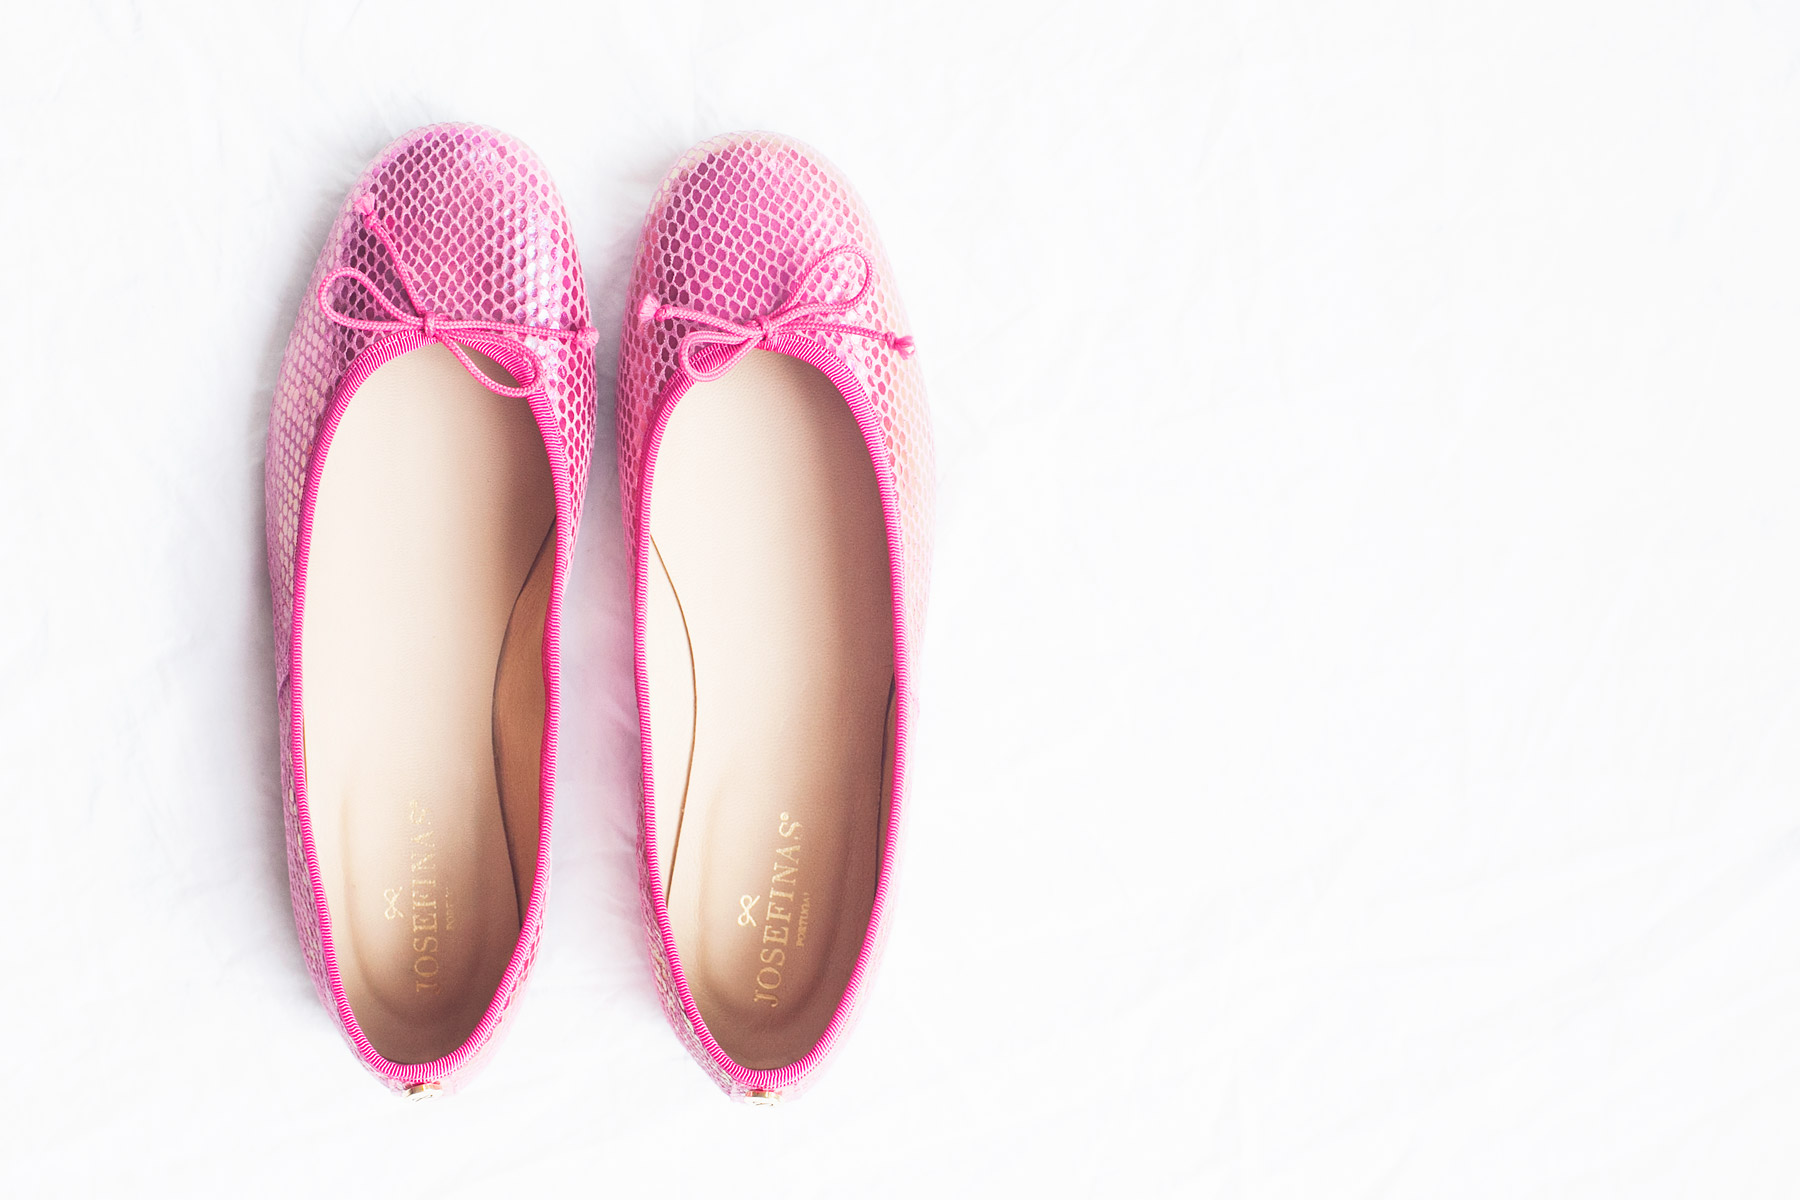 Josefinas ballet flats by Carin Olsson (Paris in Four Months)